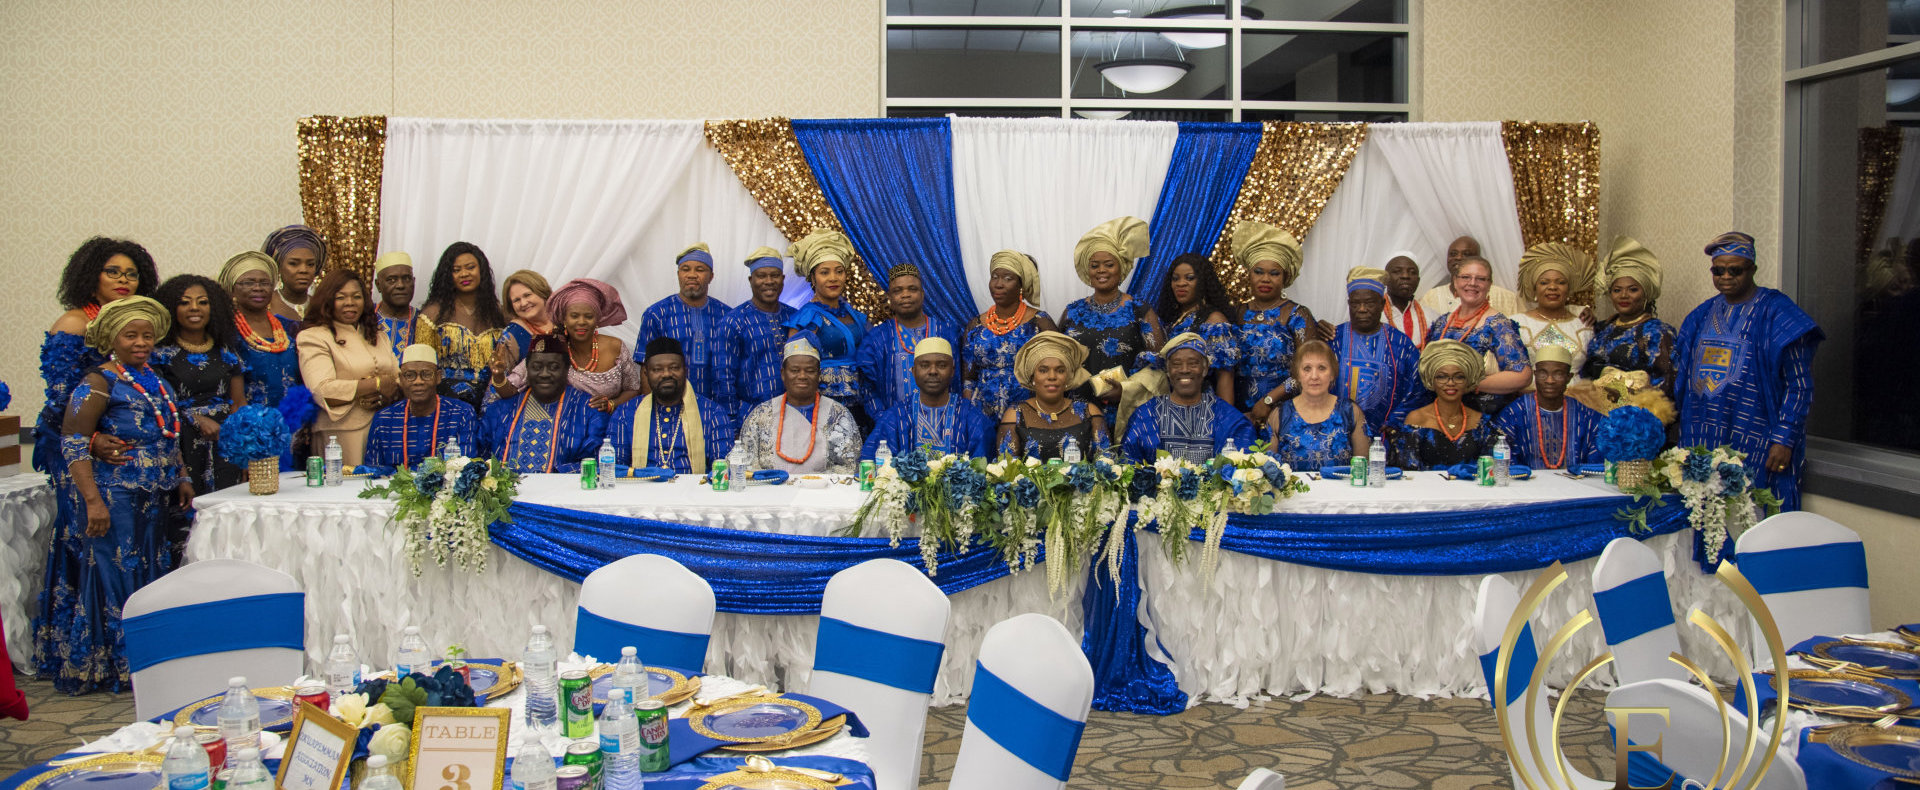 congregation wearing traditional outfit